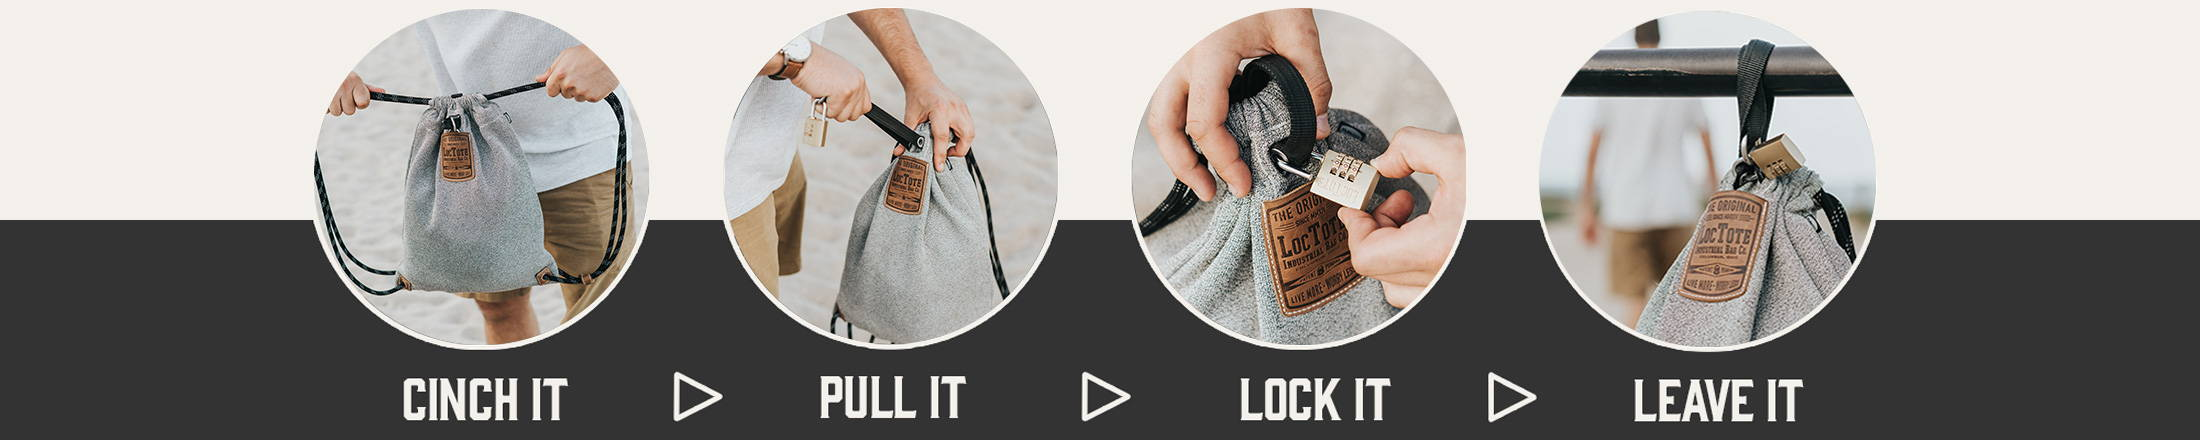 How to Lock LOCTOTE Bag Anti theft lockable backpack toughest